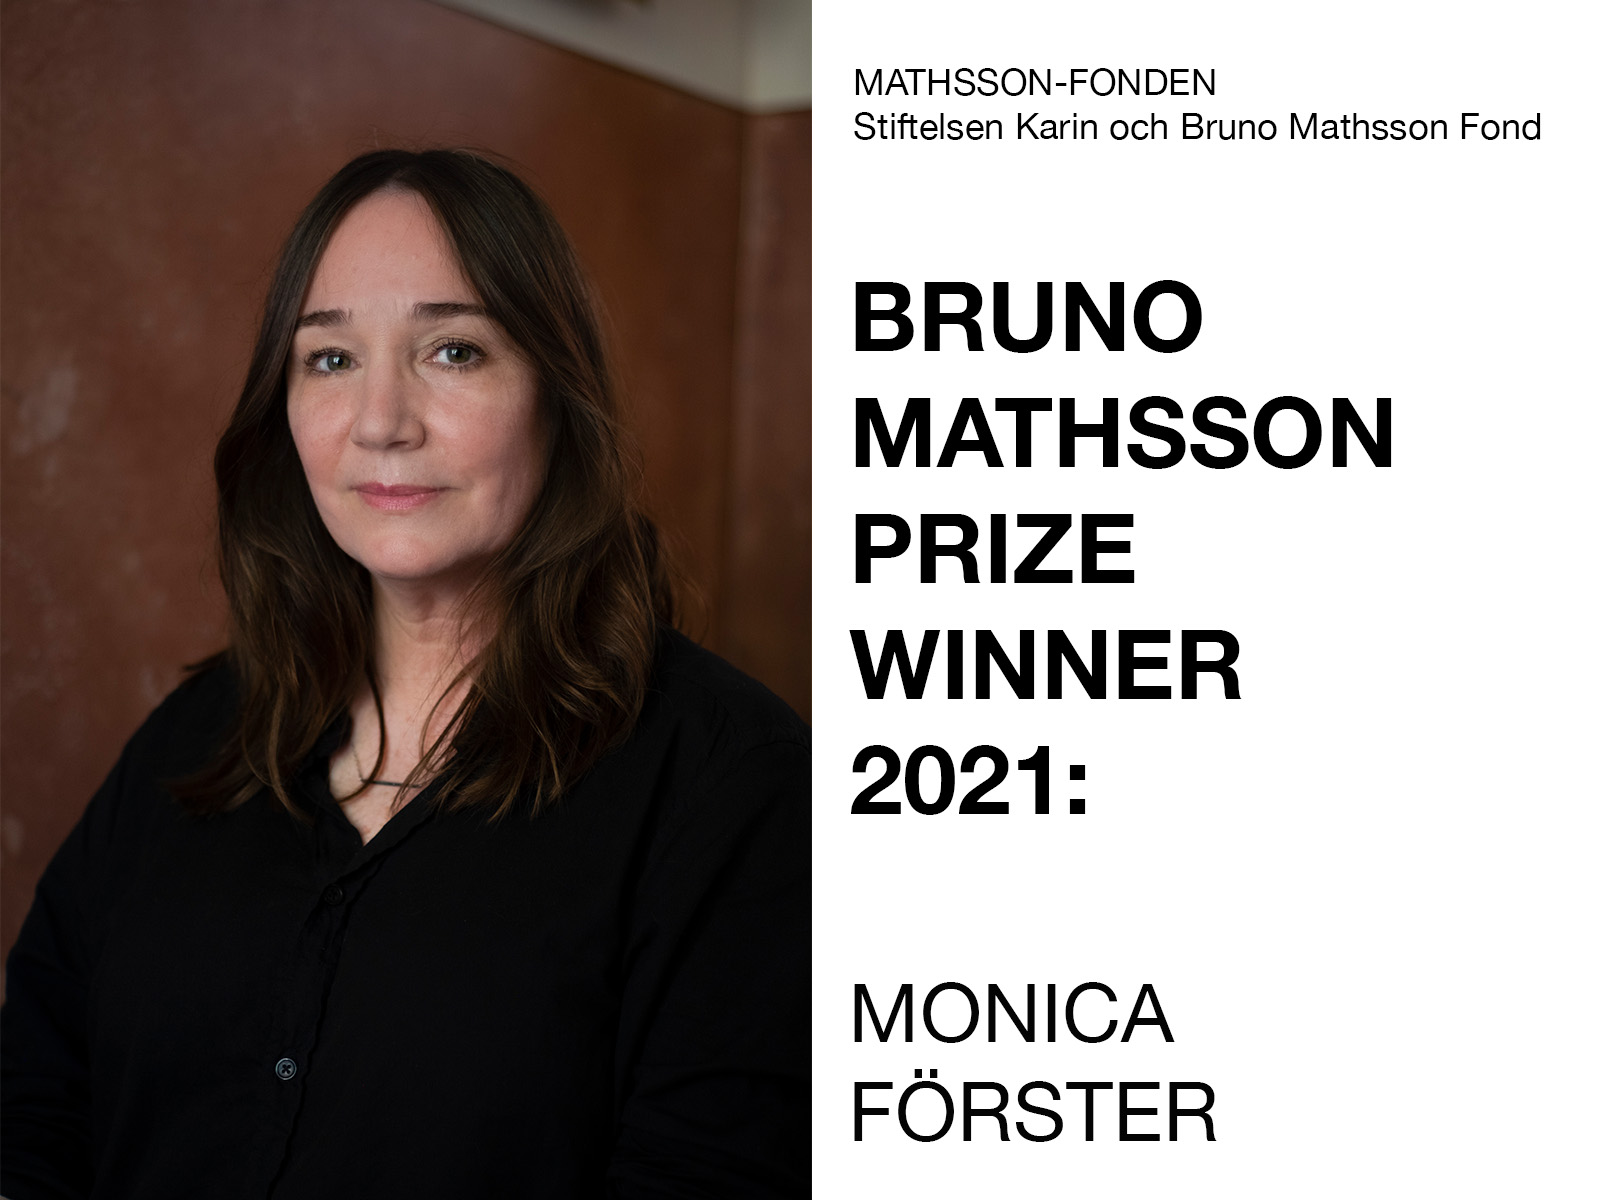 Bruno Mathsson Prize 2021 - The Bruno Mathsson Prize is awarded annually since 1984 and is the largest design prize in the Nordic region. The award ceremony will take place on November 20, 2021 at the Vandalorum Museum of Art and Design in Värnamo in connection with the opening of an extensive exhibition we are designing with Formladan.